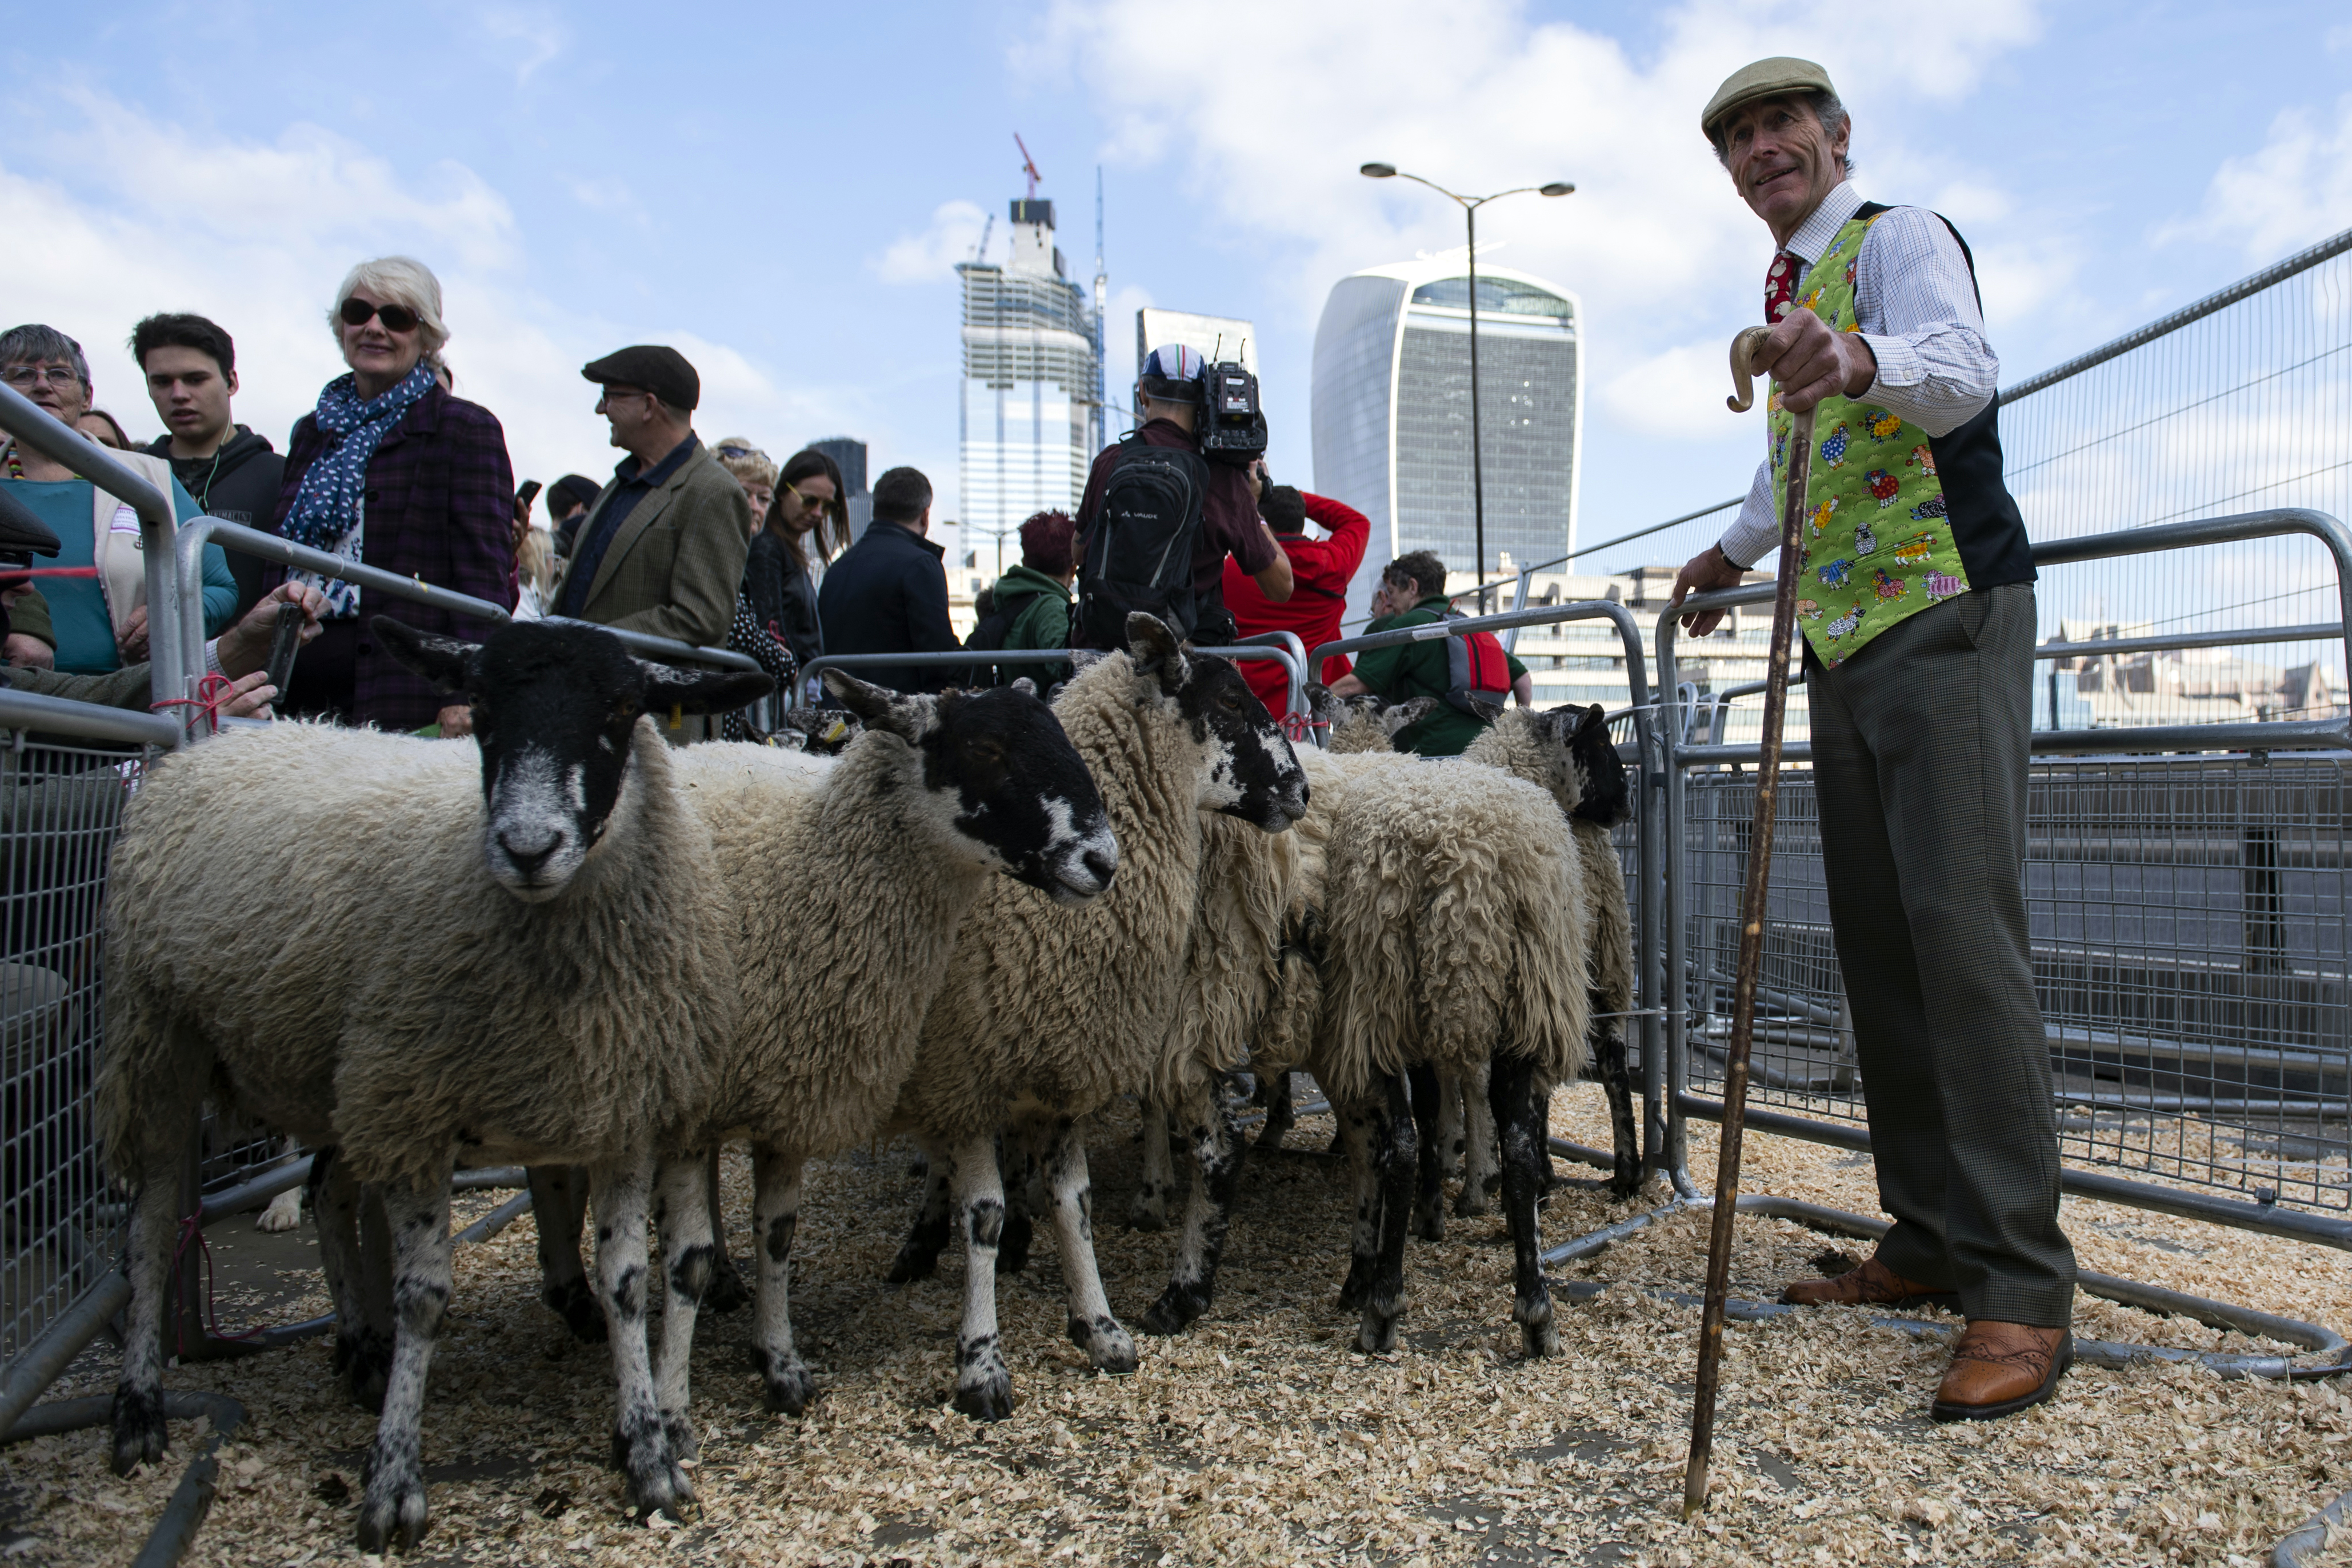 UK announces 'protectionist measures' for its agriculture